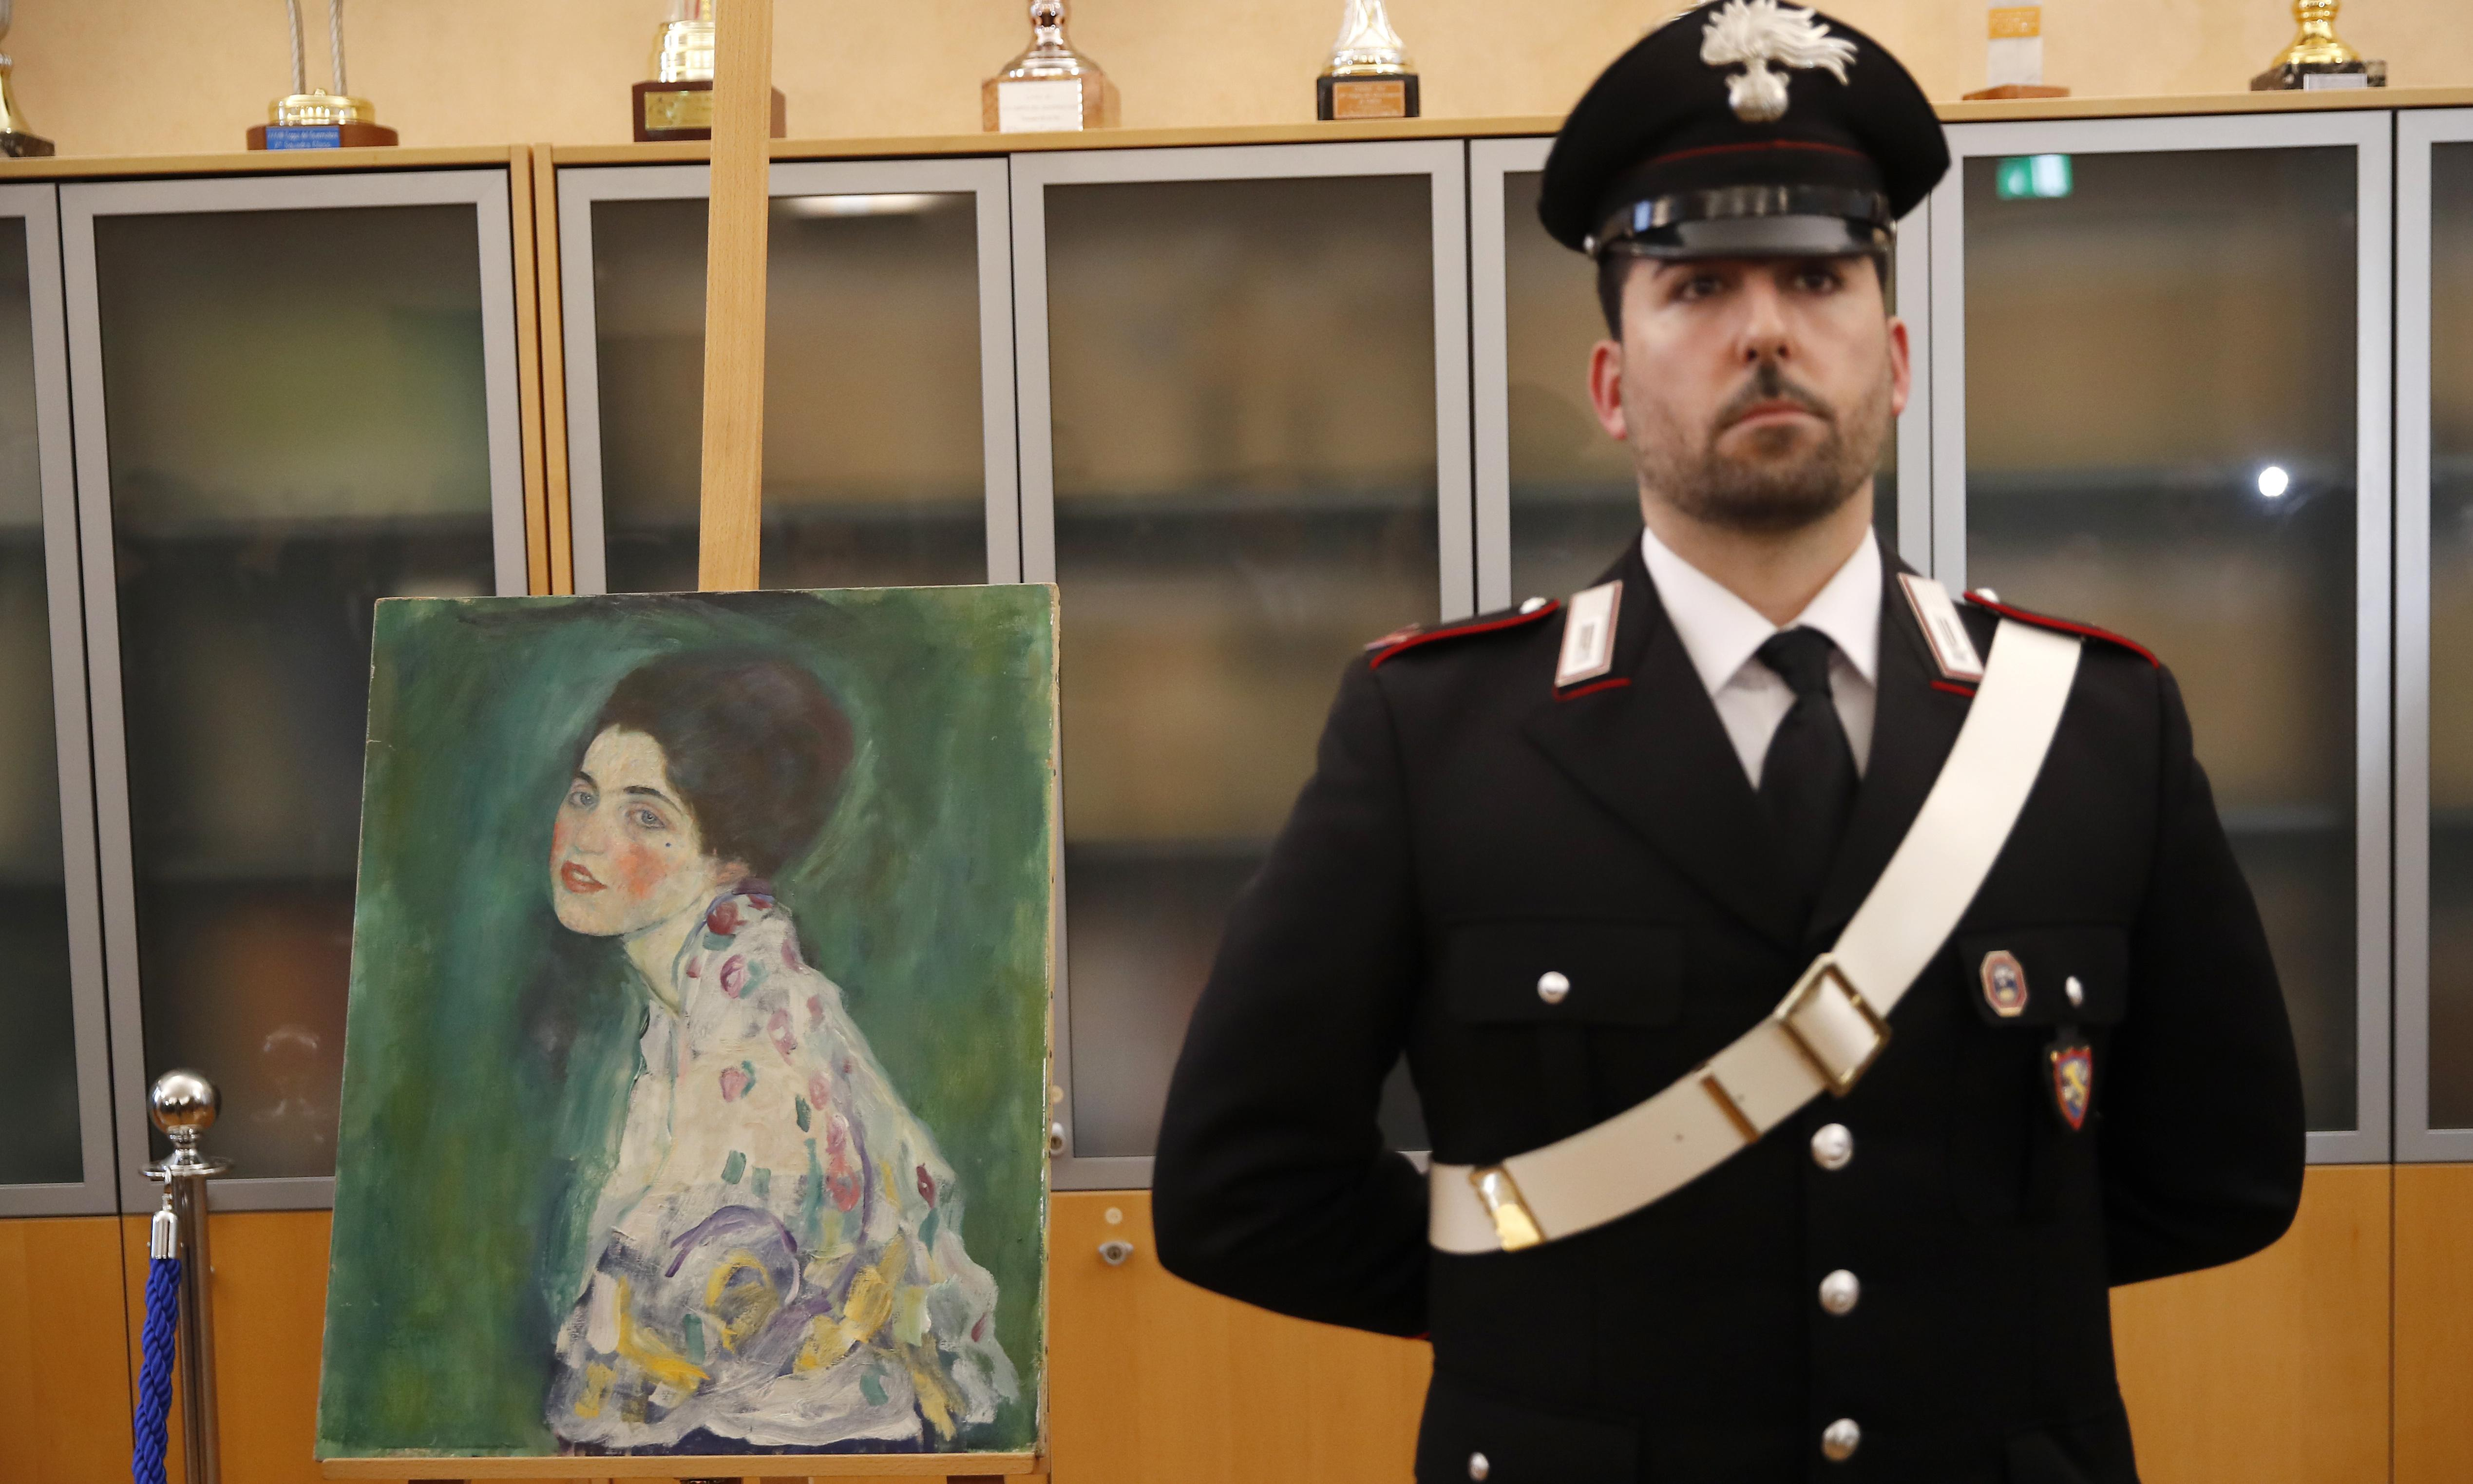 Klimt art thieves confess to stealing then returning painting